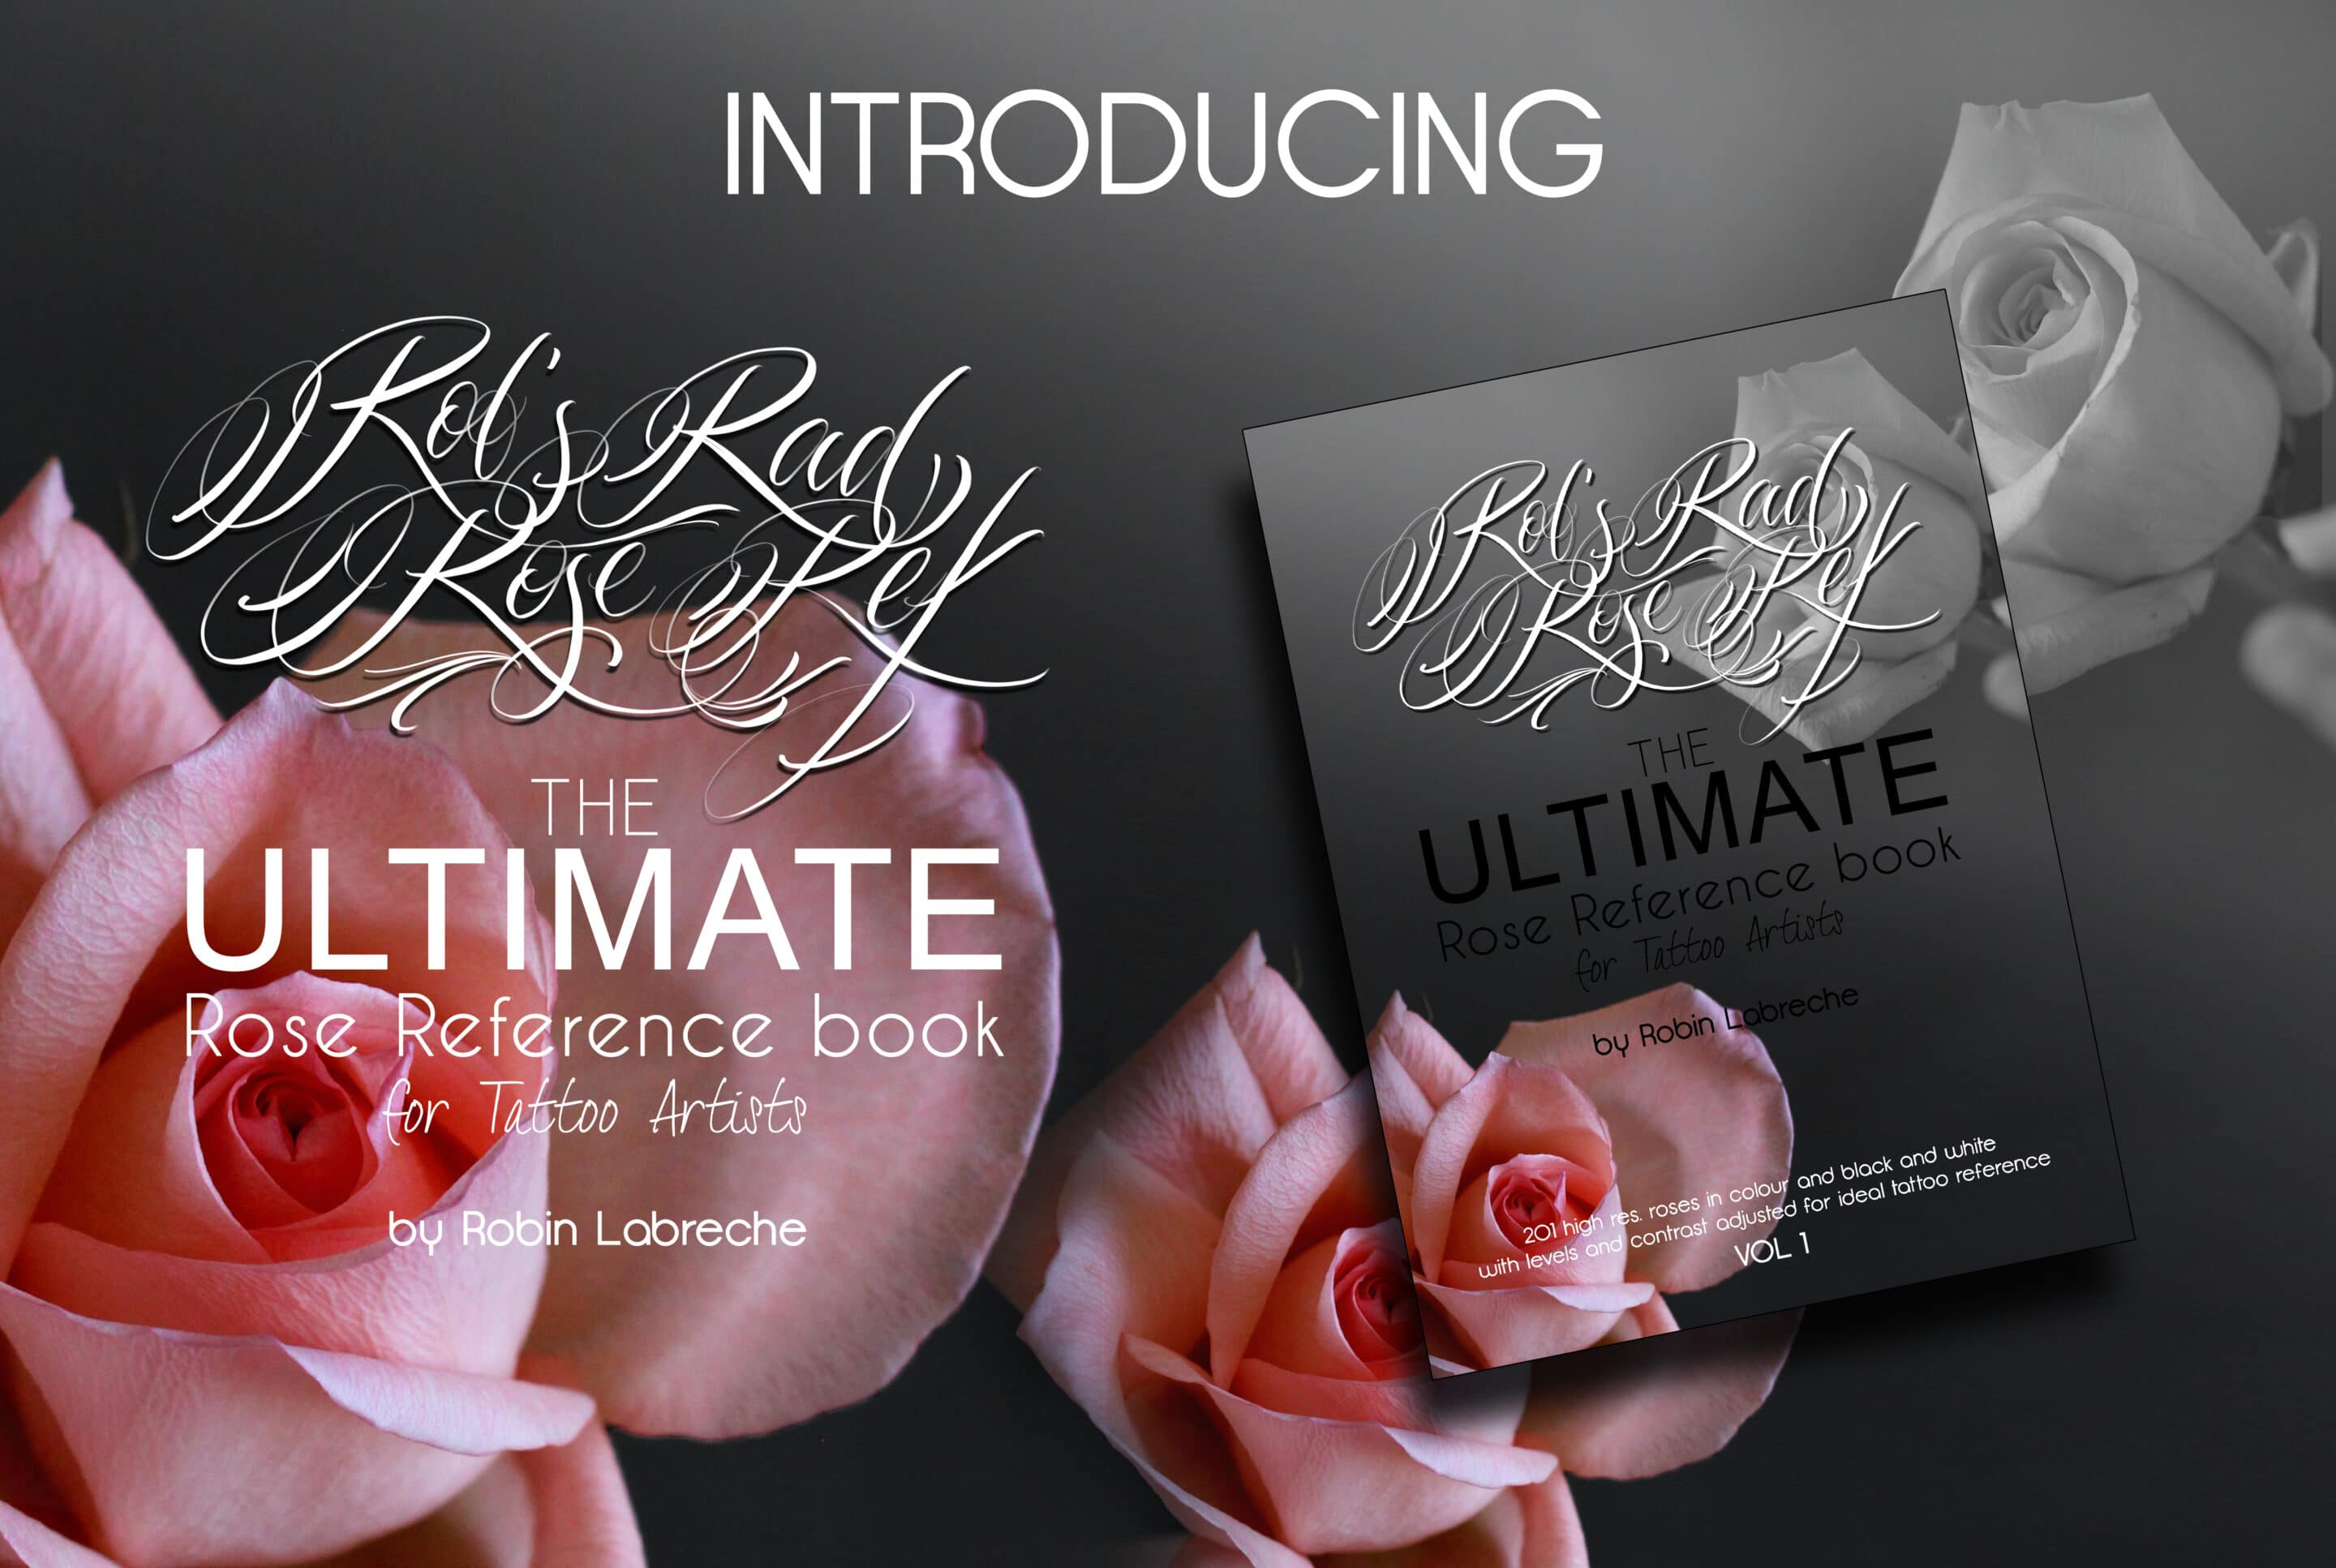 The ultimate rose reference book for artists.